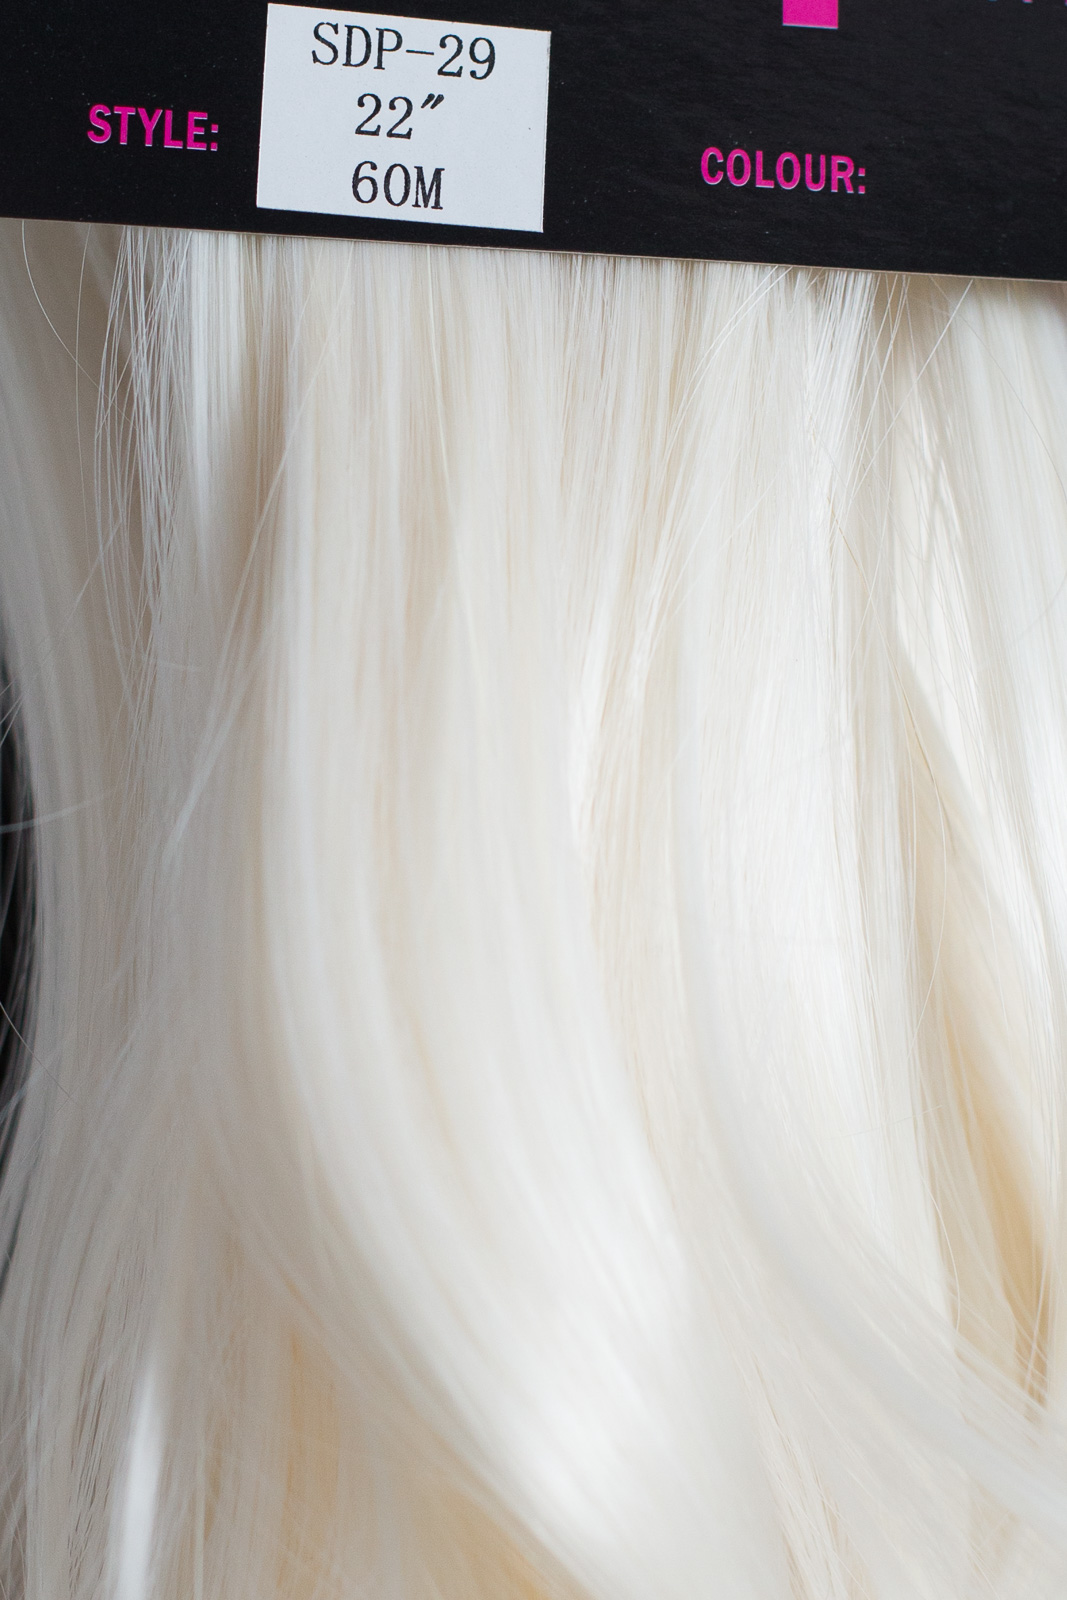 Ponytail Clip In On Hair Extensions White Blonde 60m